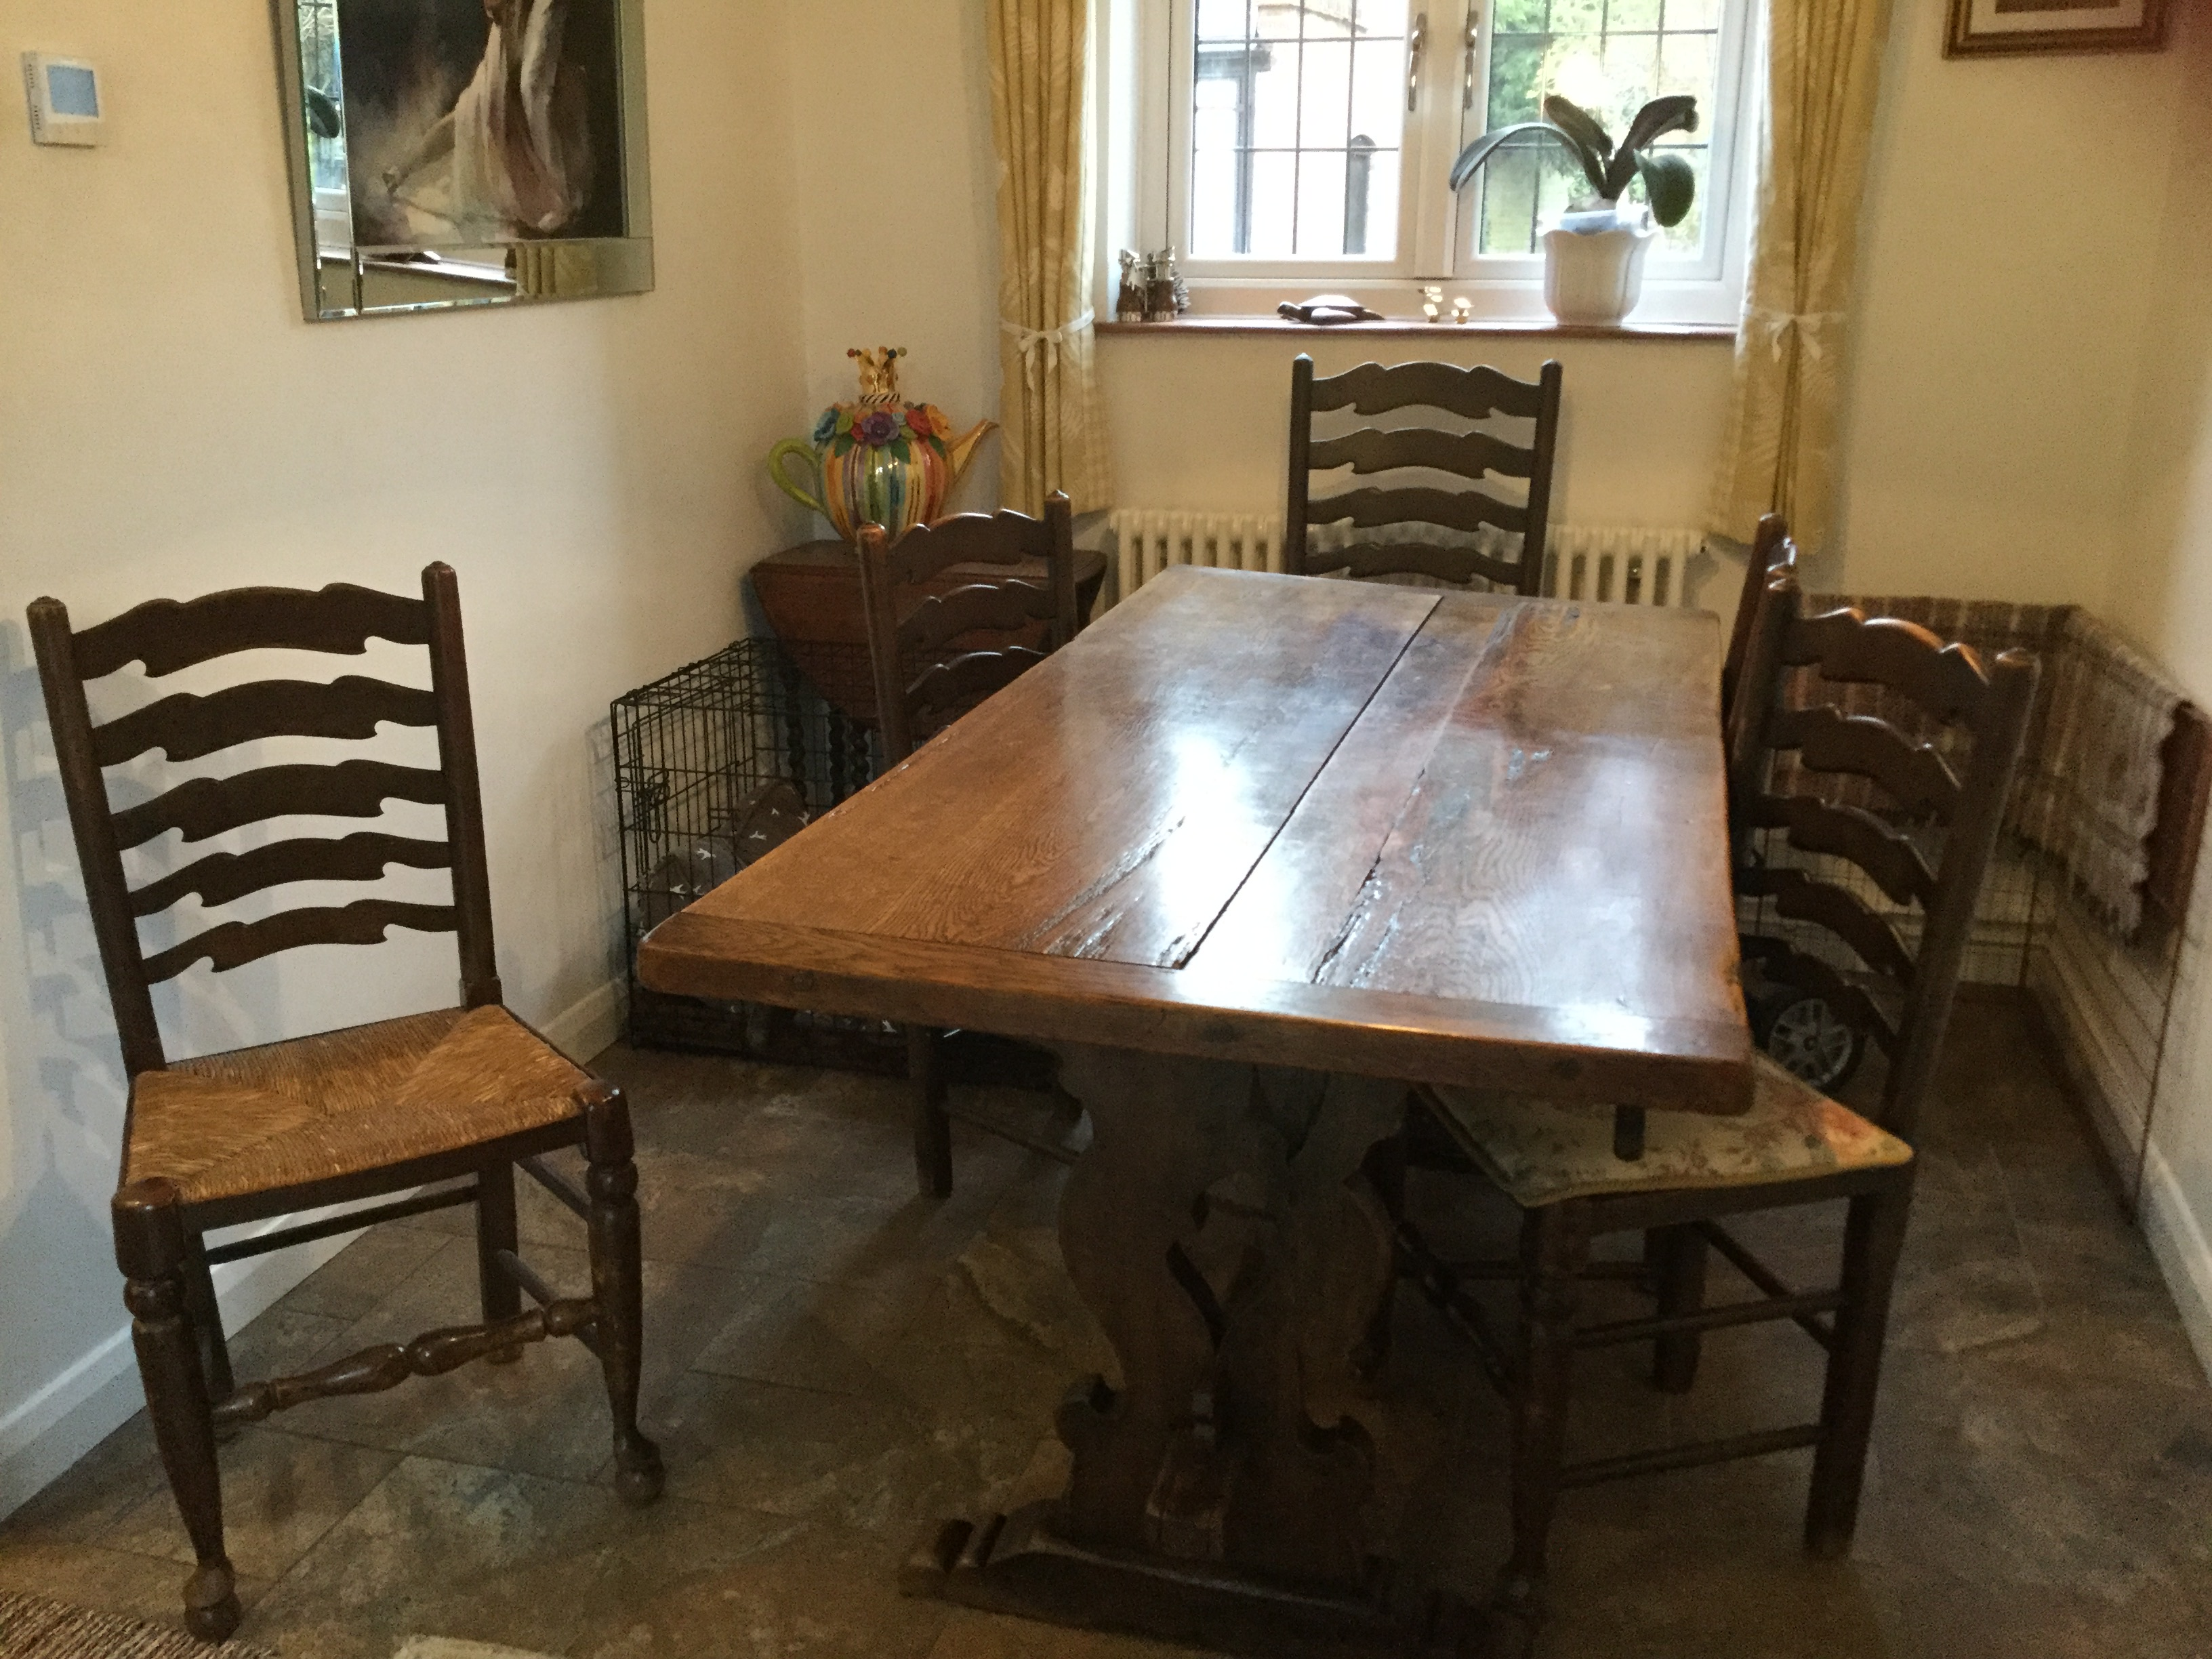 Secondhand Vintage And Reclaimed 40 S Vintage Vintage Oak Dining Table 3m X 1 1m With 10x Ladder Back Chairs Surrey